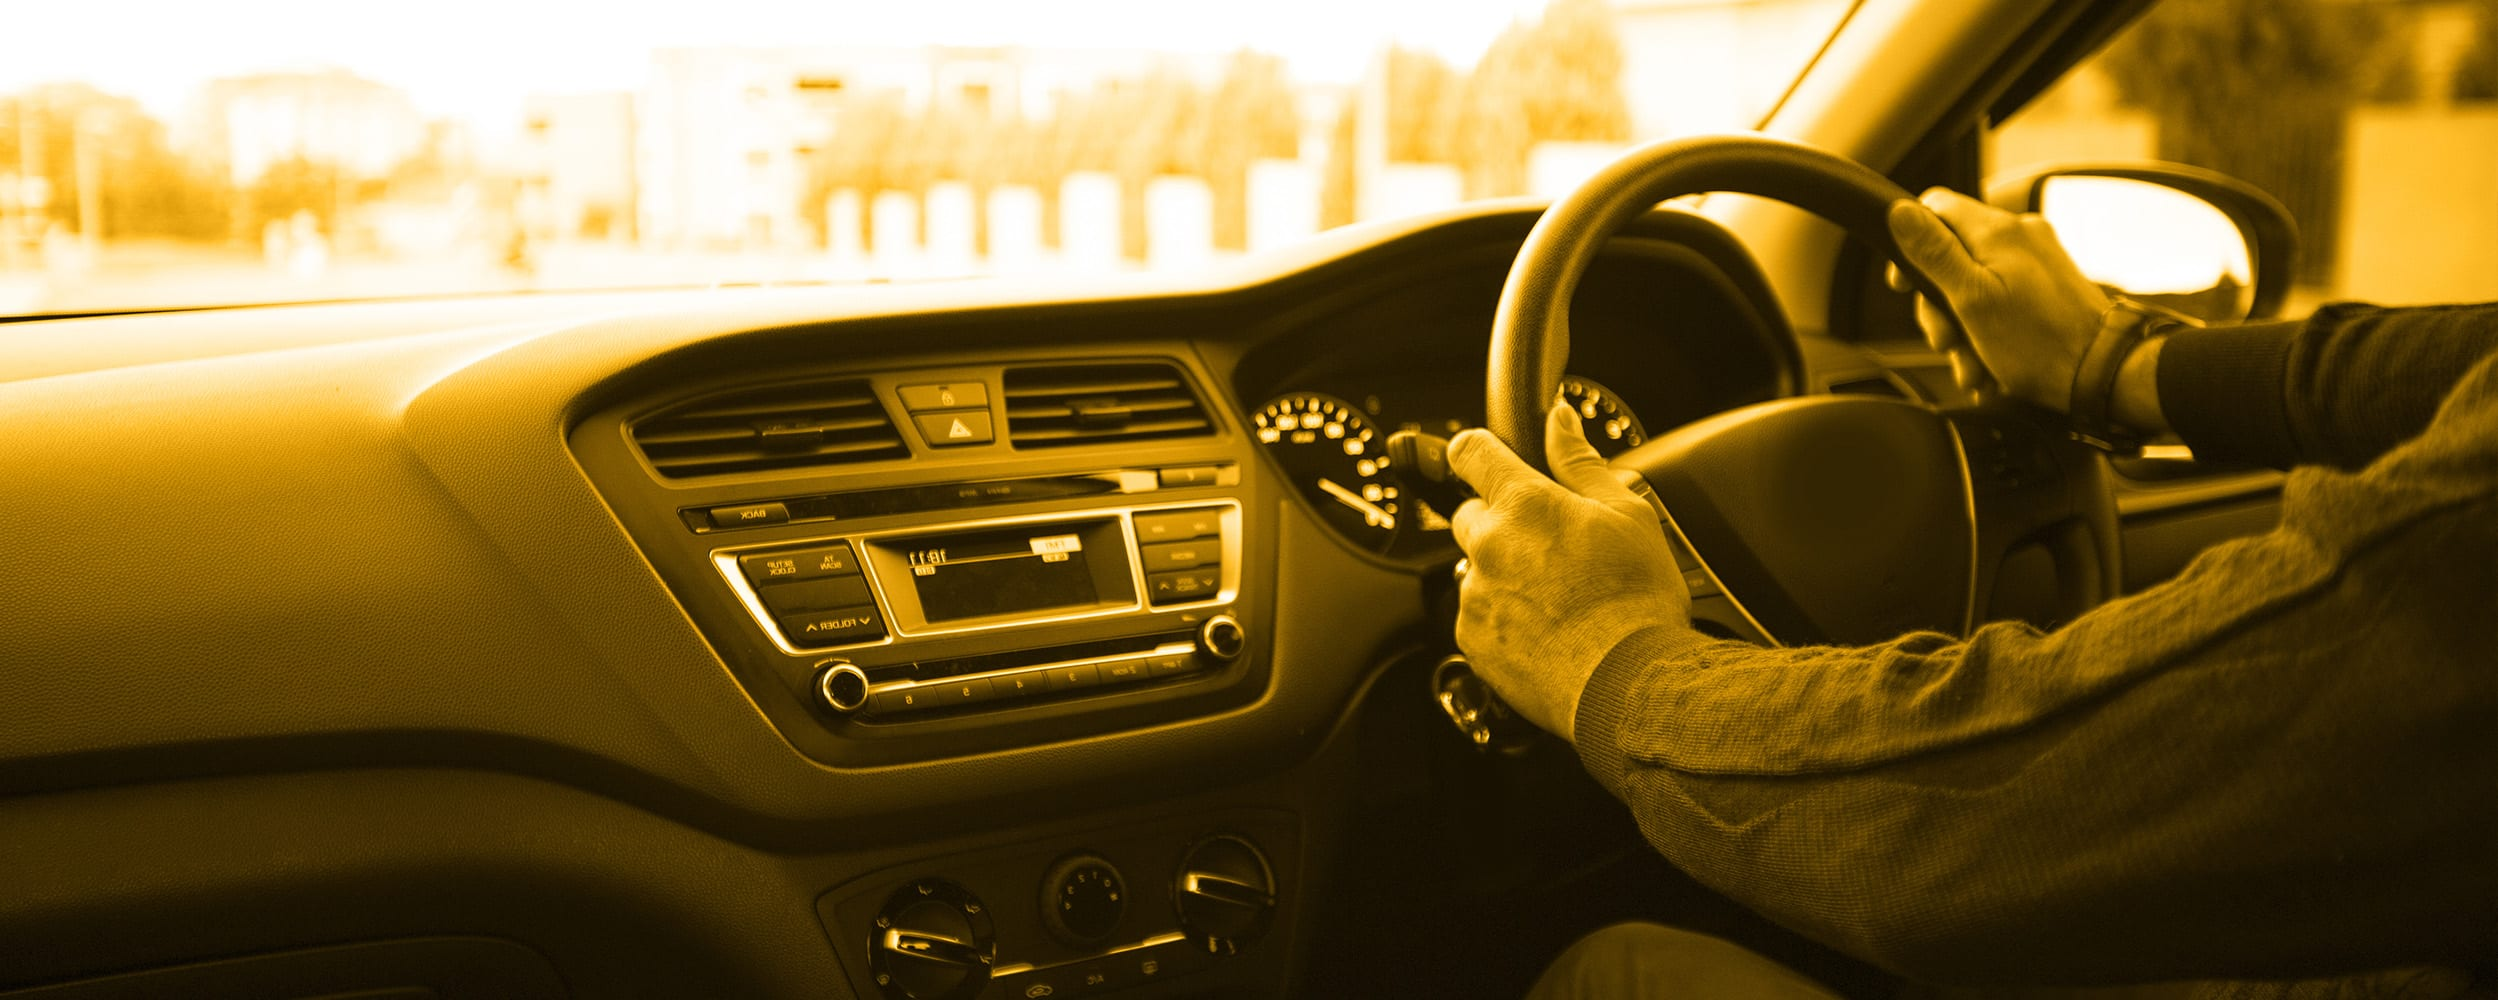 Safer Driving Services - Driver Coaching